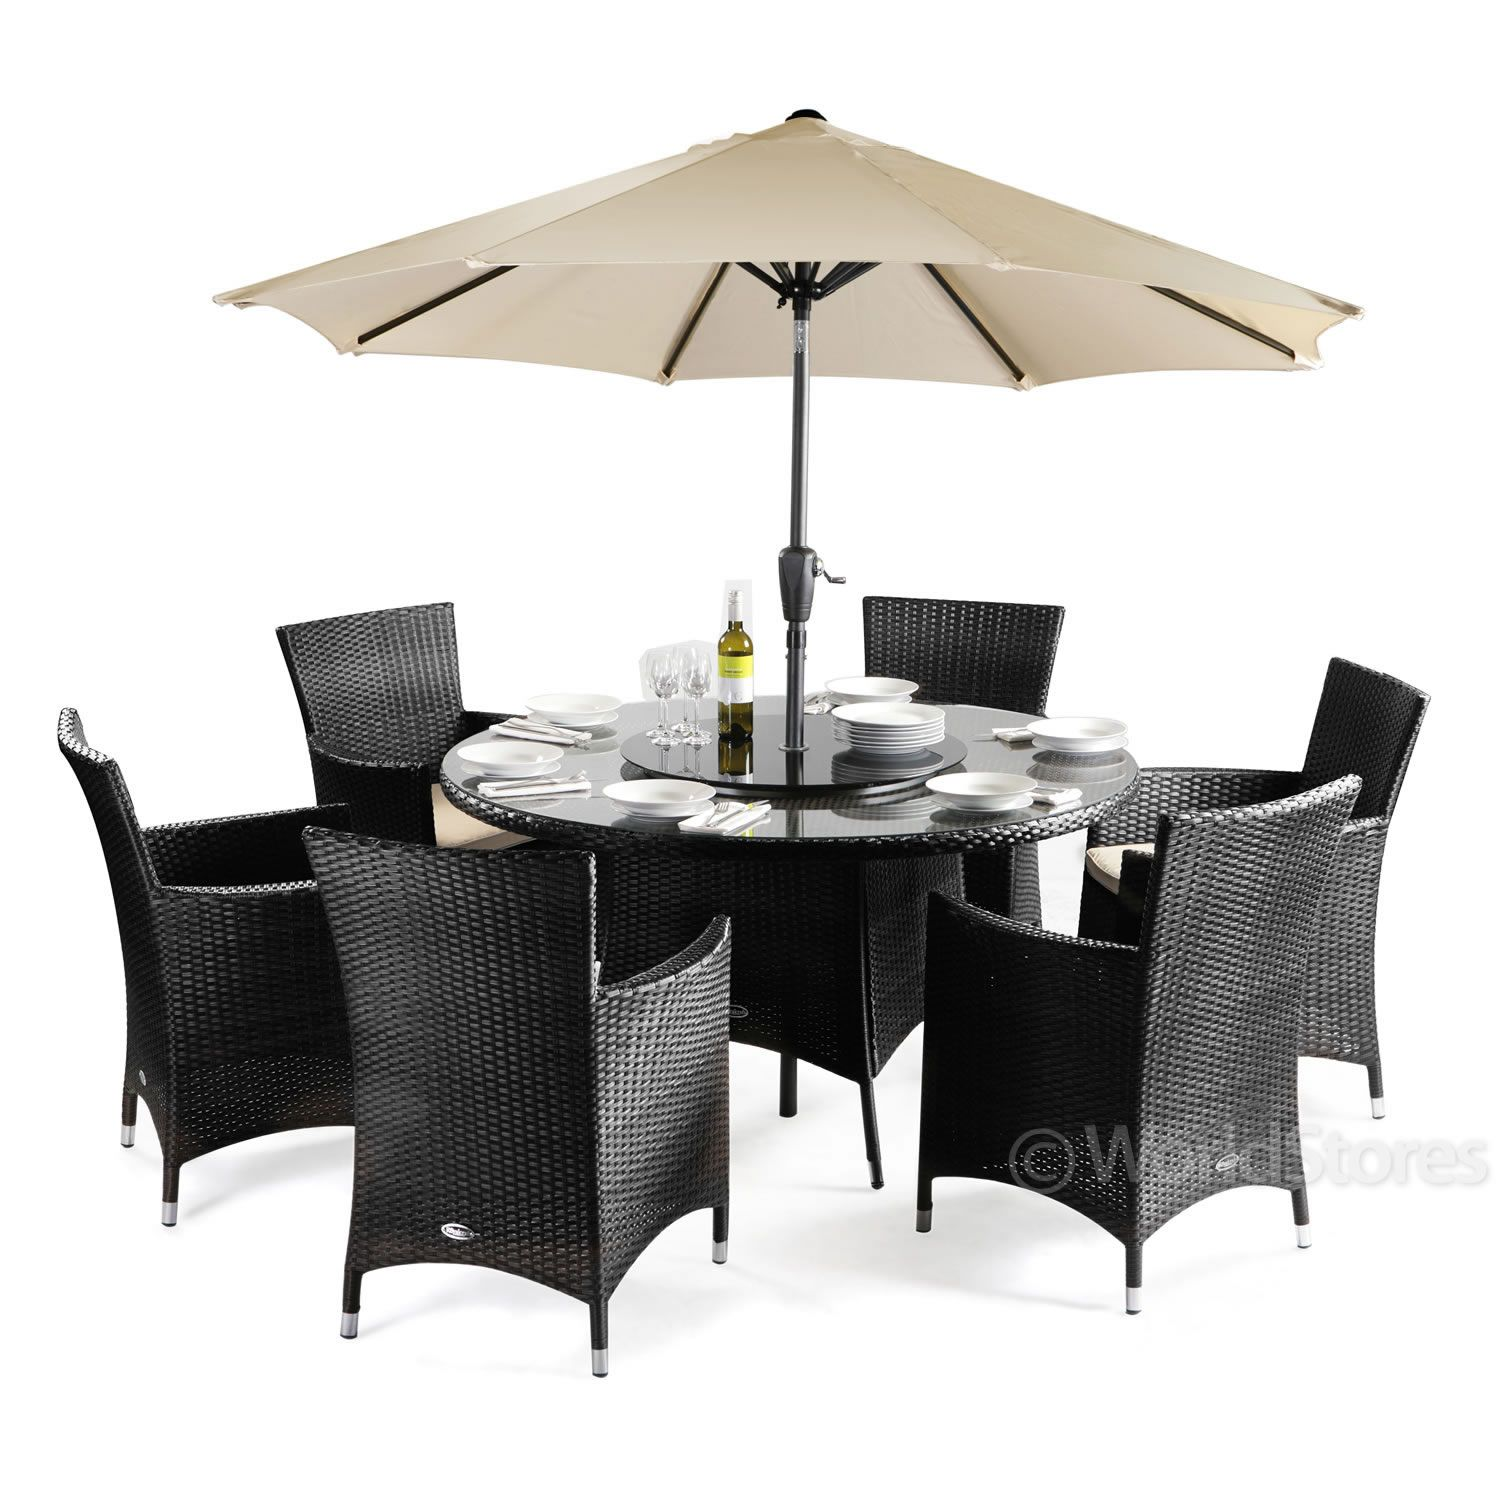 rattan round 6 chairs patio furniture set - Garden Furniture 6 Seater